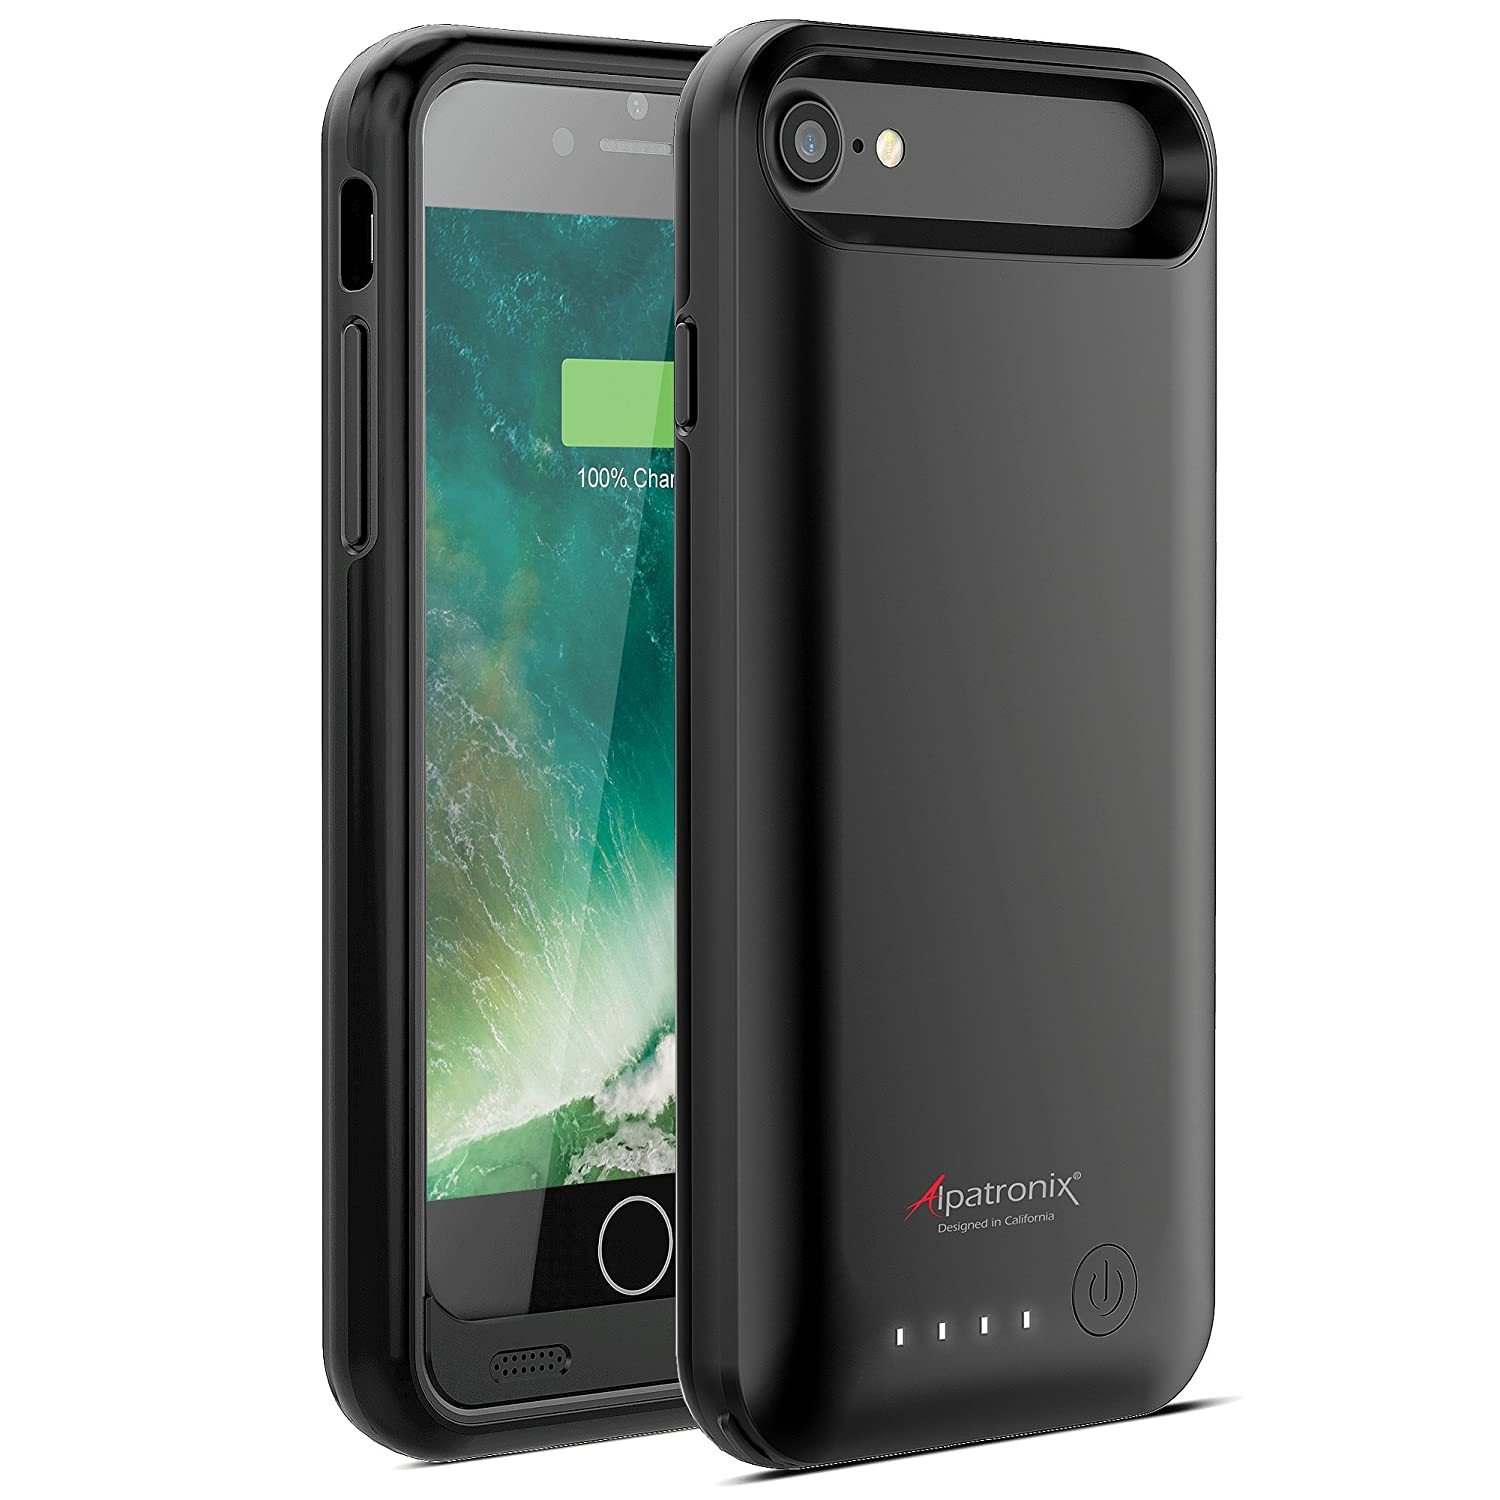 iPhone 8/7 Battery Case, Alpatronix BX170 4.7-inch 3200mAh Ultra Slim Protective Portable Rechargeable Extended Charging Cover Backup Case for iPhone 8 & iPhone 7 Juice Bank Power Pack - Black